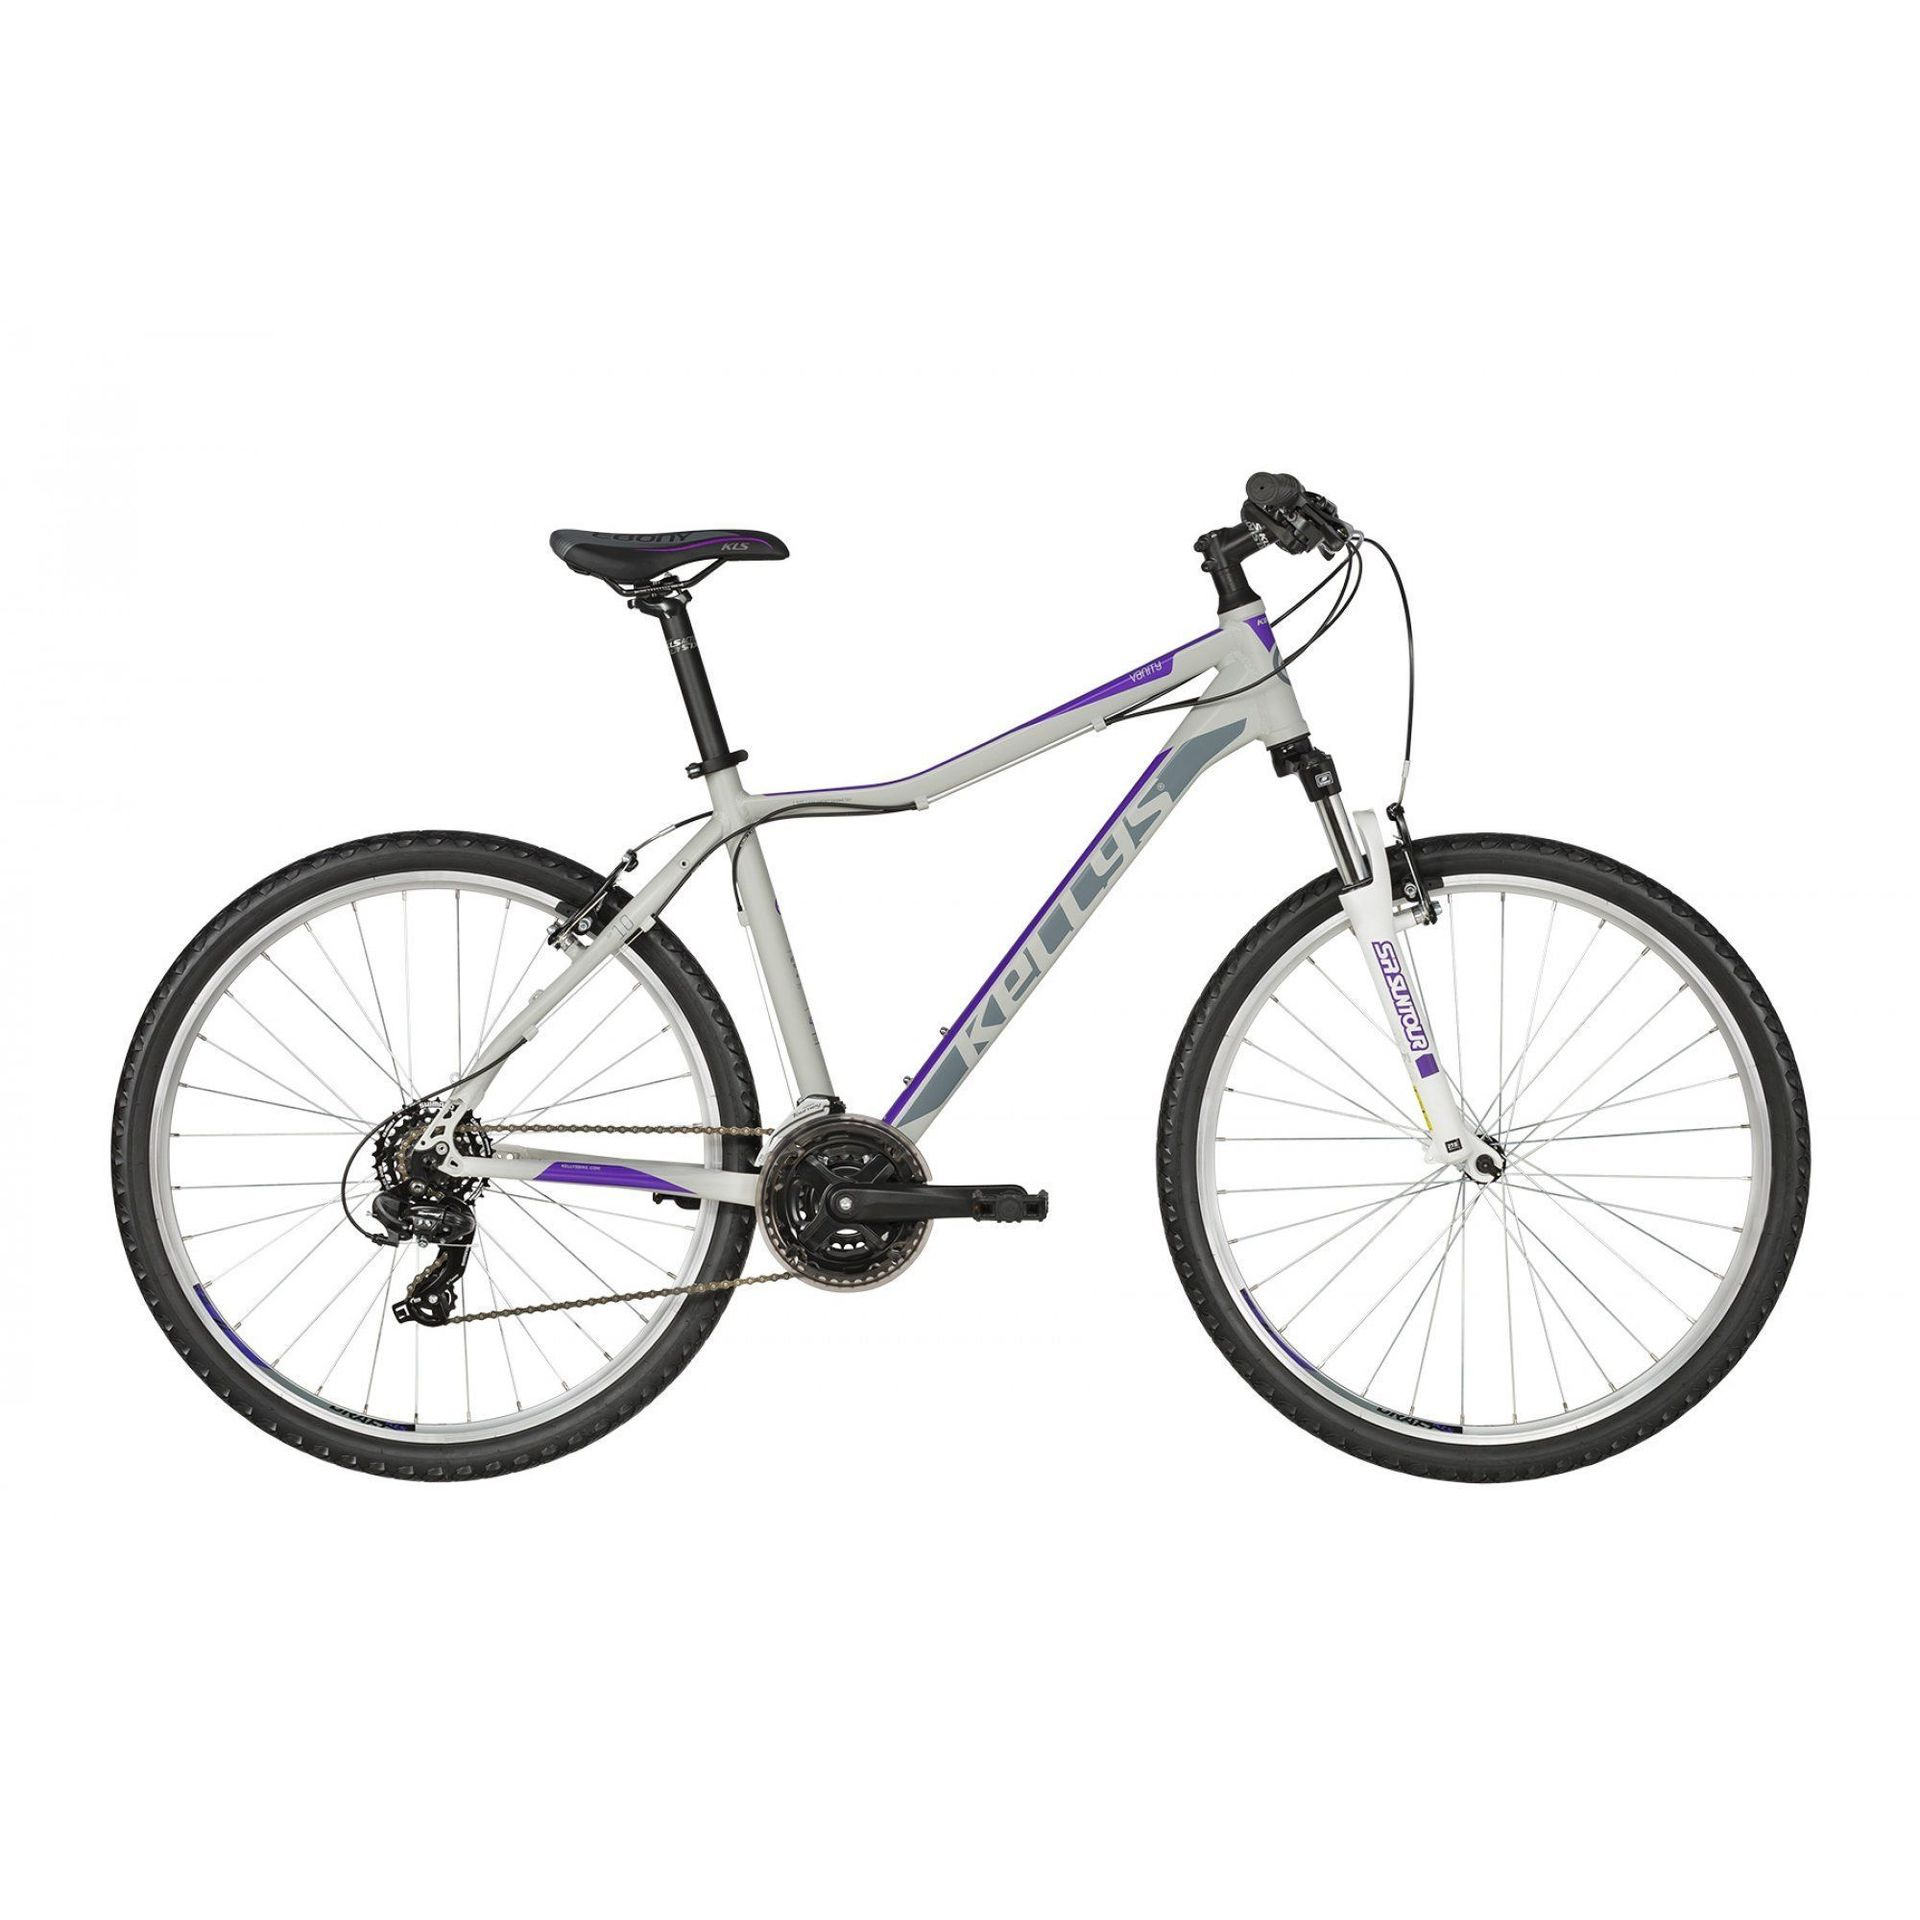 ROWER KELLYS VANITY 10 PURPLE GREY K19071